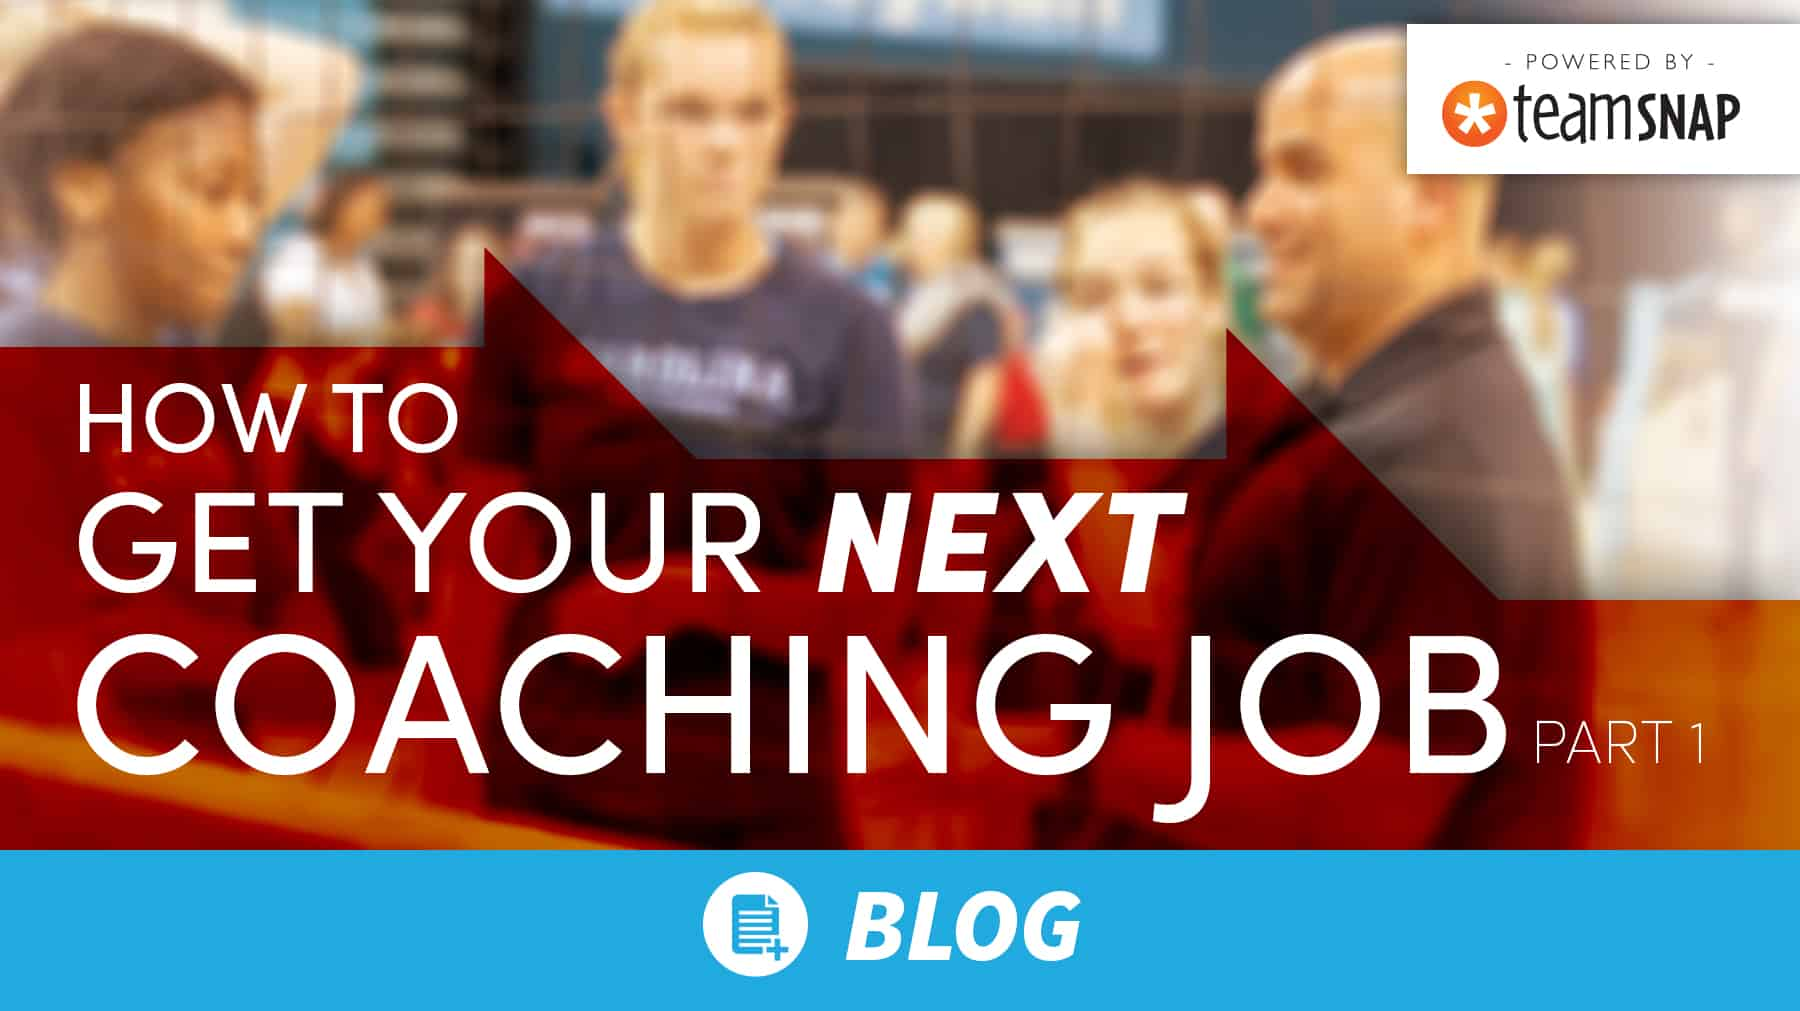 How to get your NEXT coaching job: Part 1